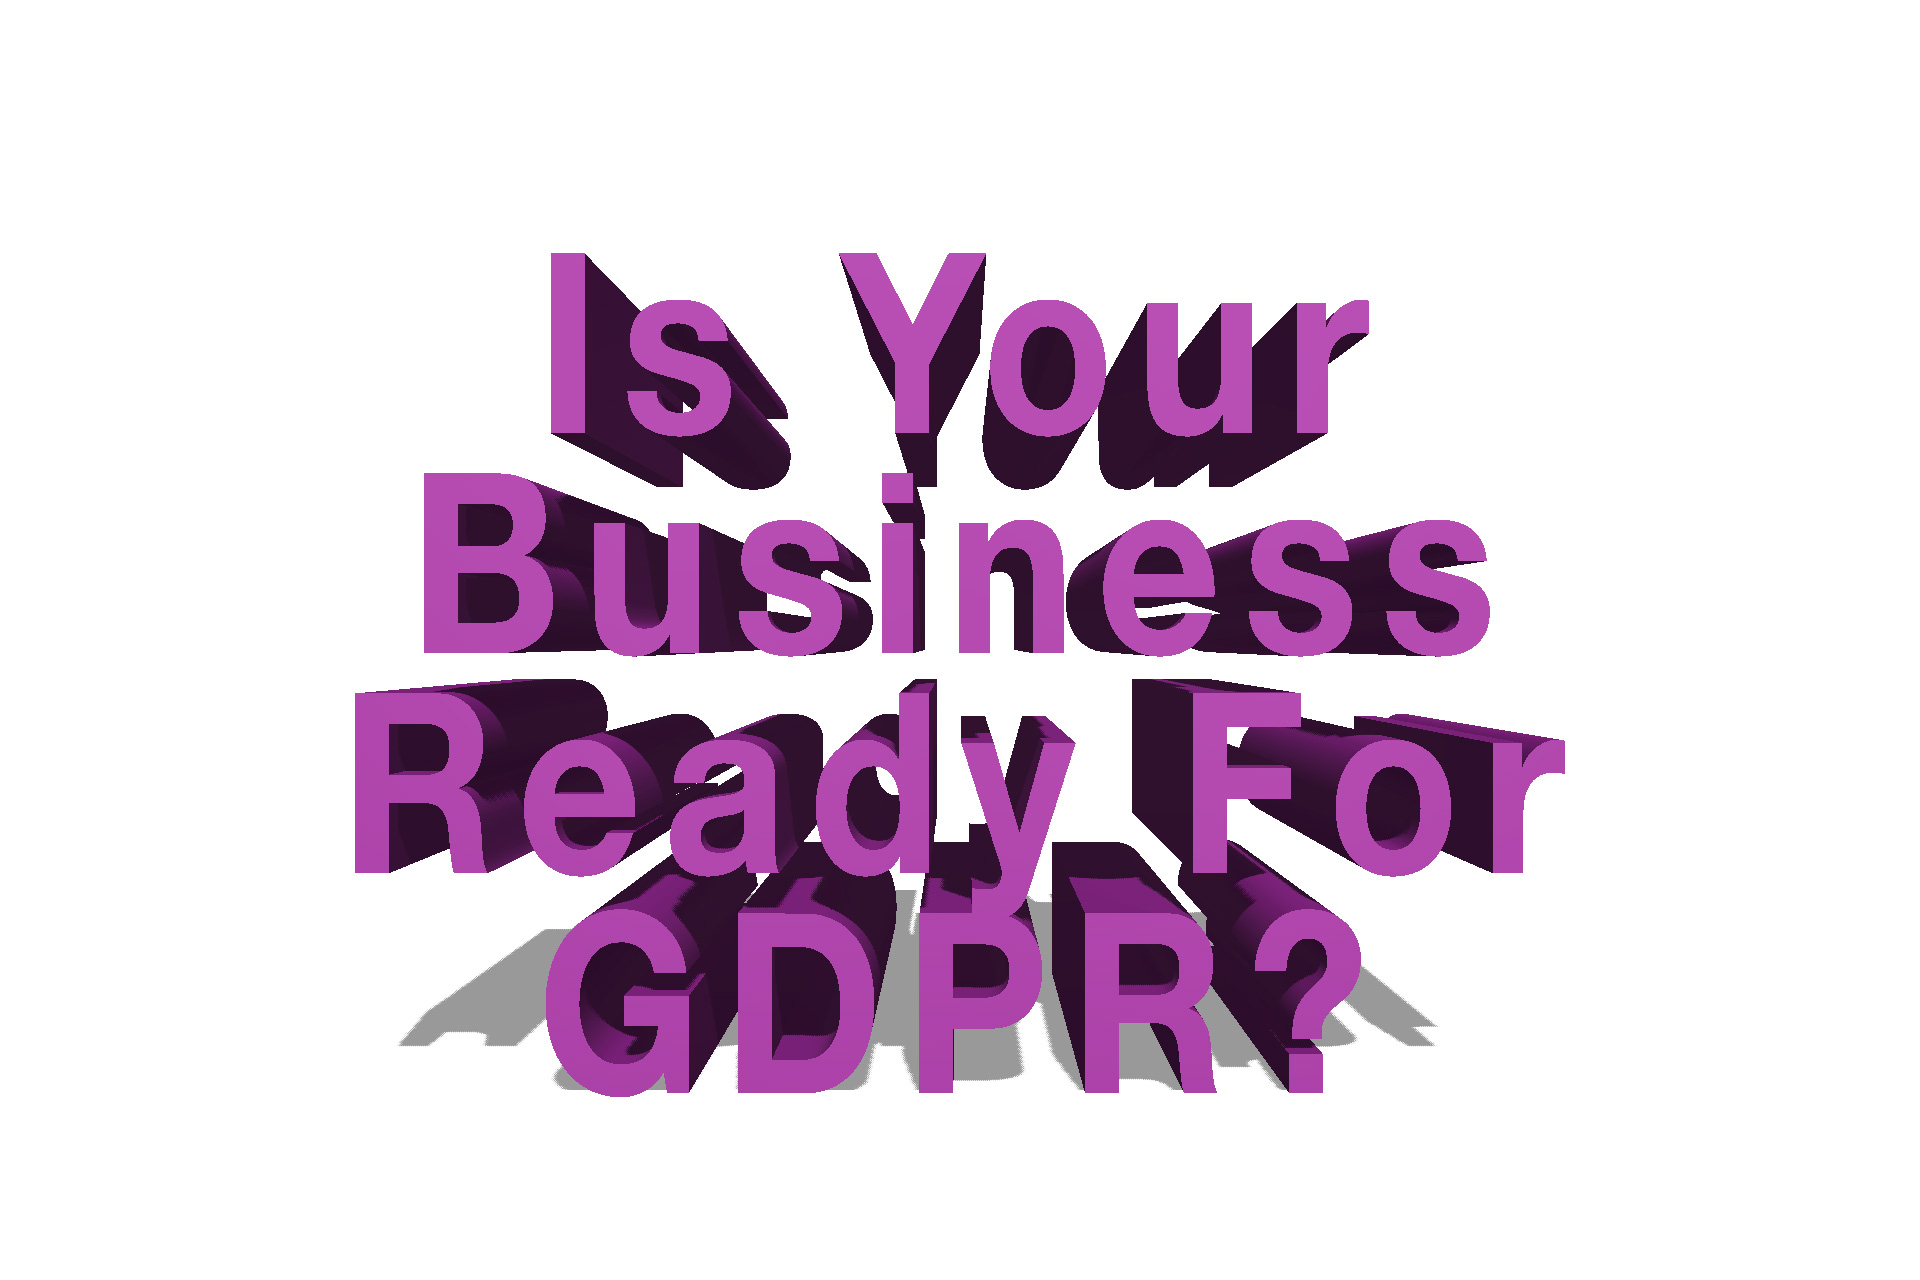 As 25th May 2018 comes ever closer, is your business ready for GDPR?